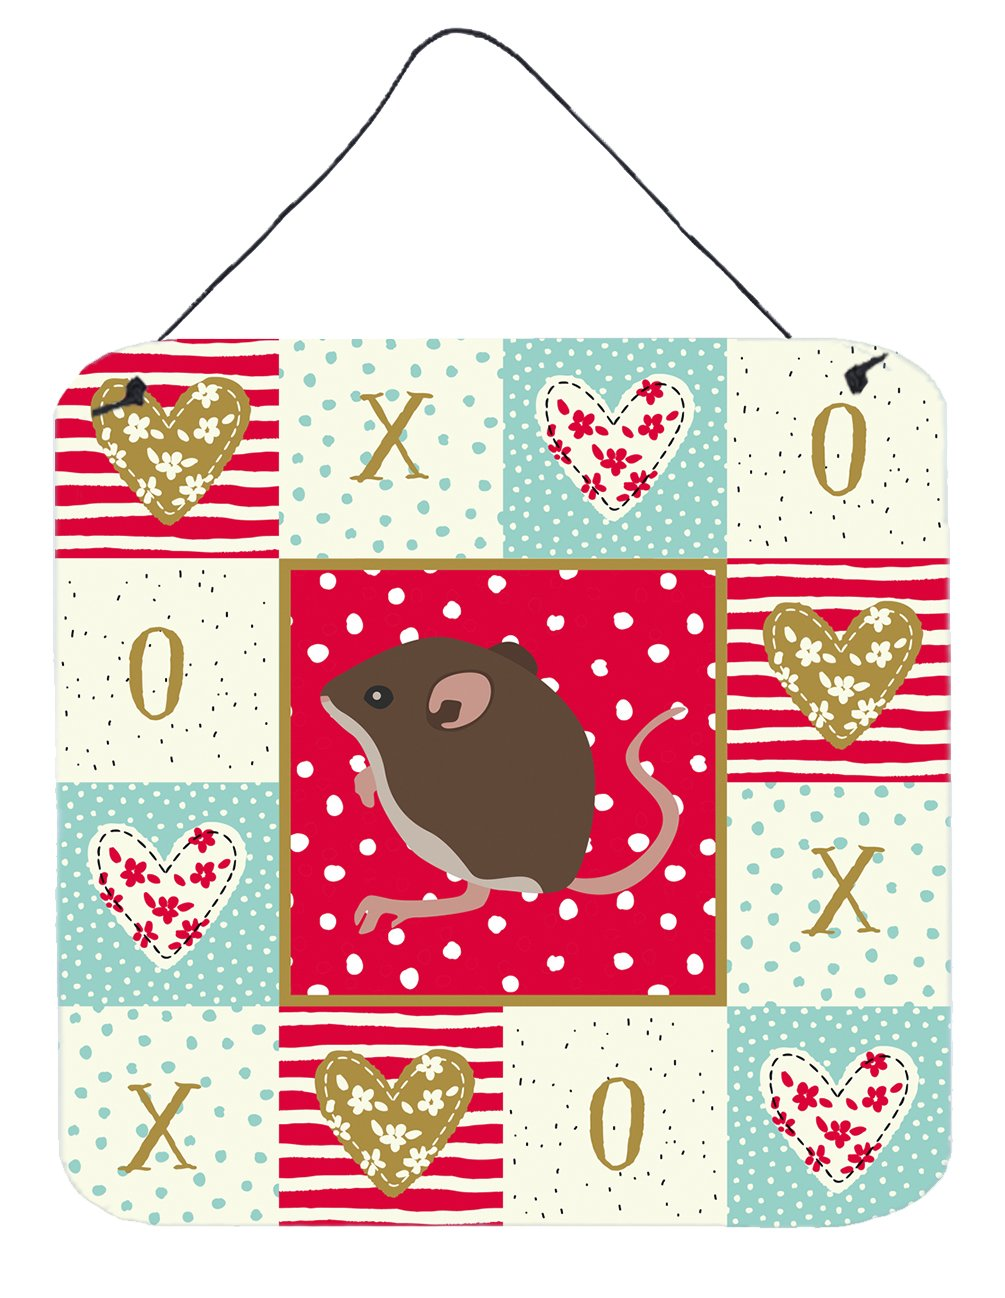 Baby Mouse Love Wall or Door Hanging Prints CK5448DS66 by Caroline's Treasures